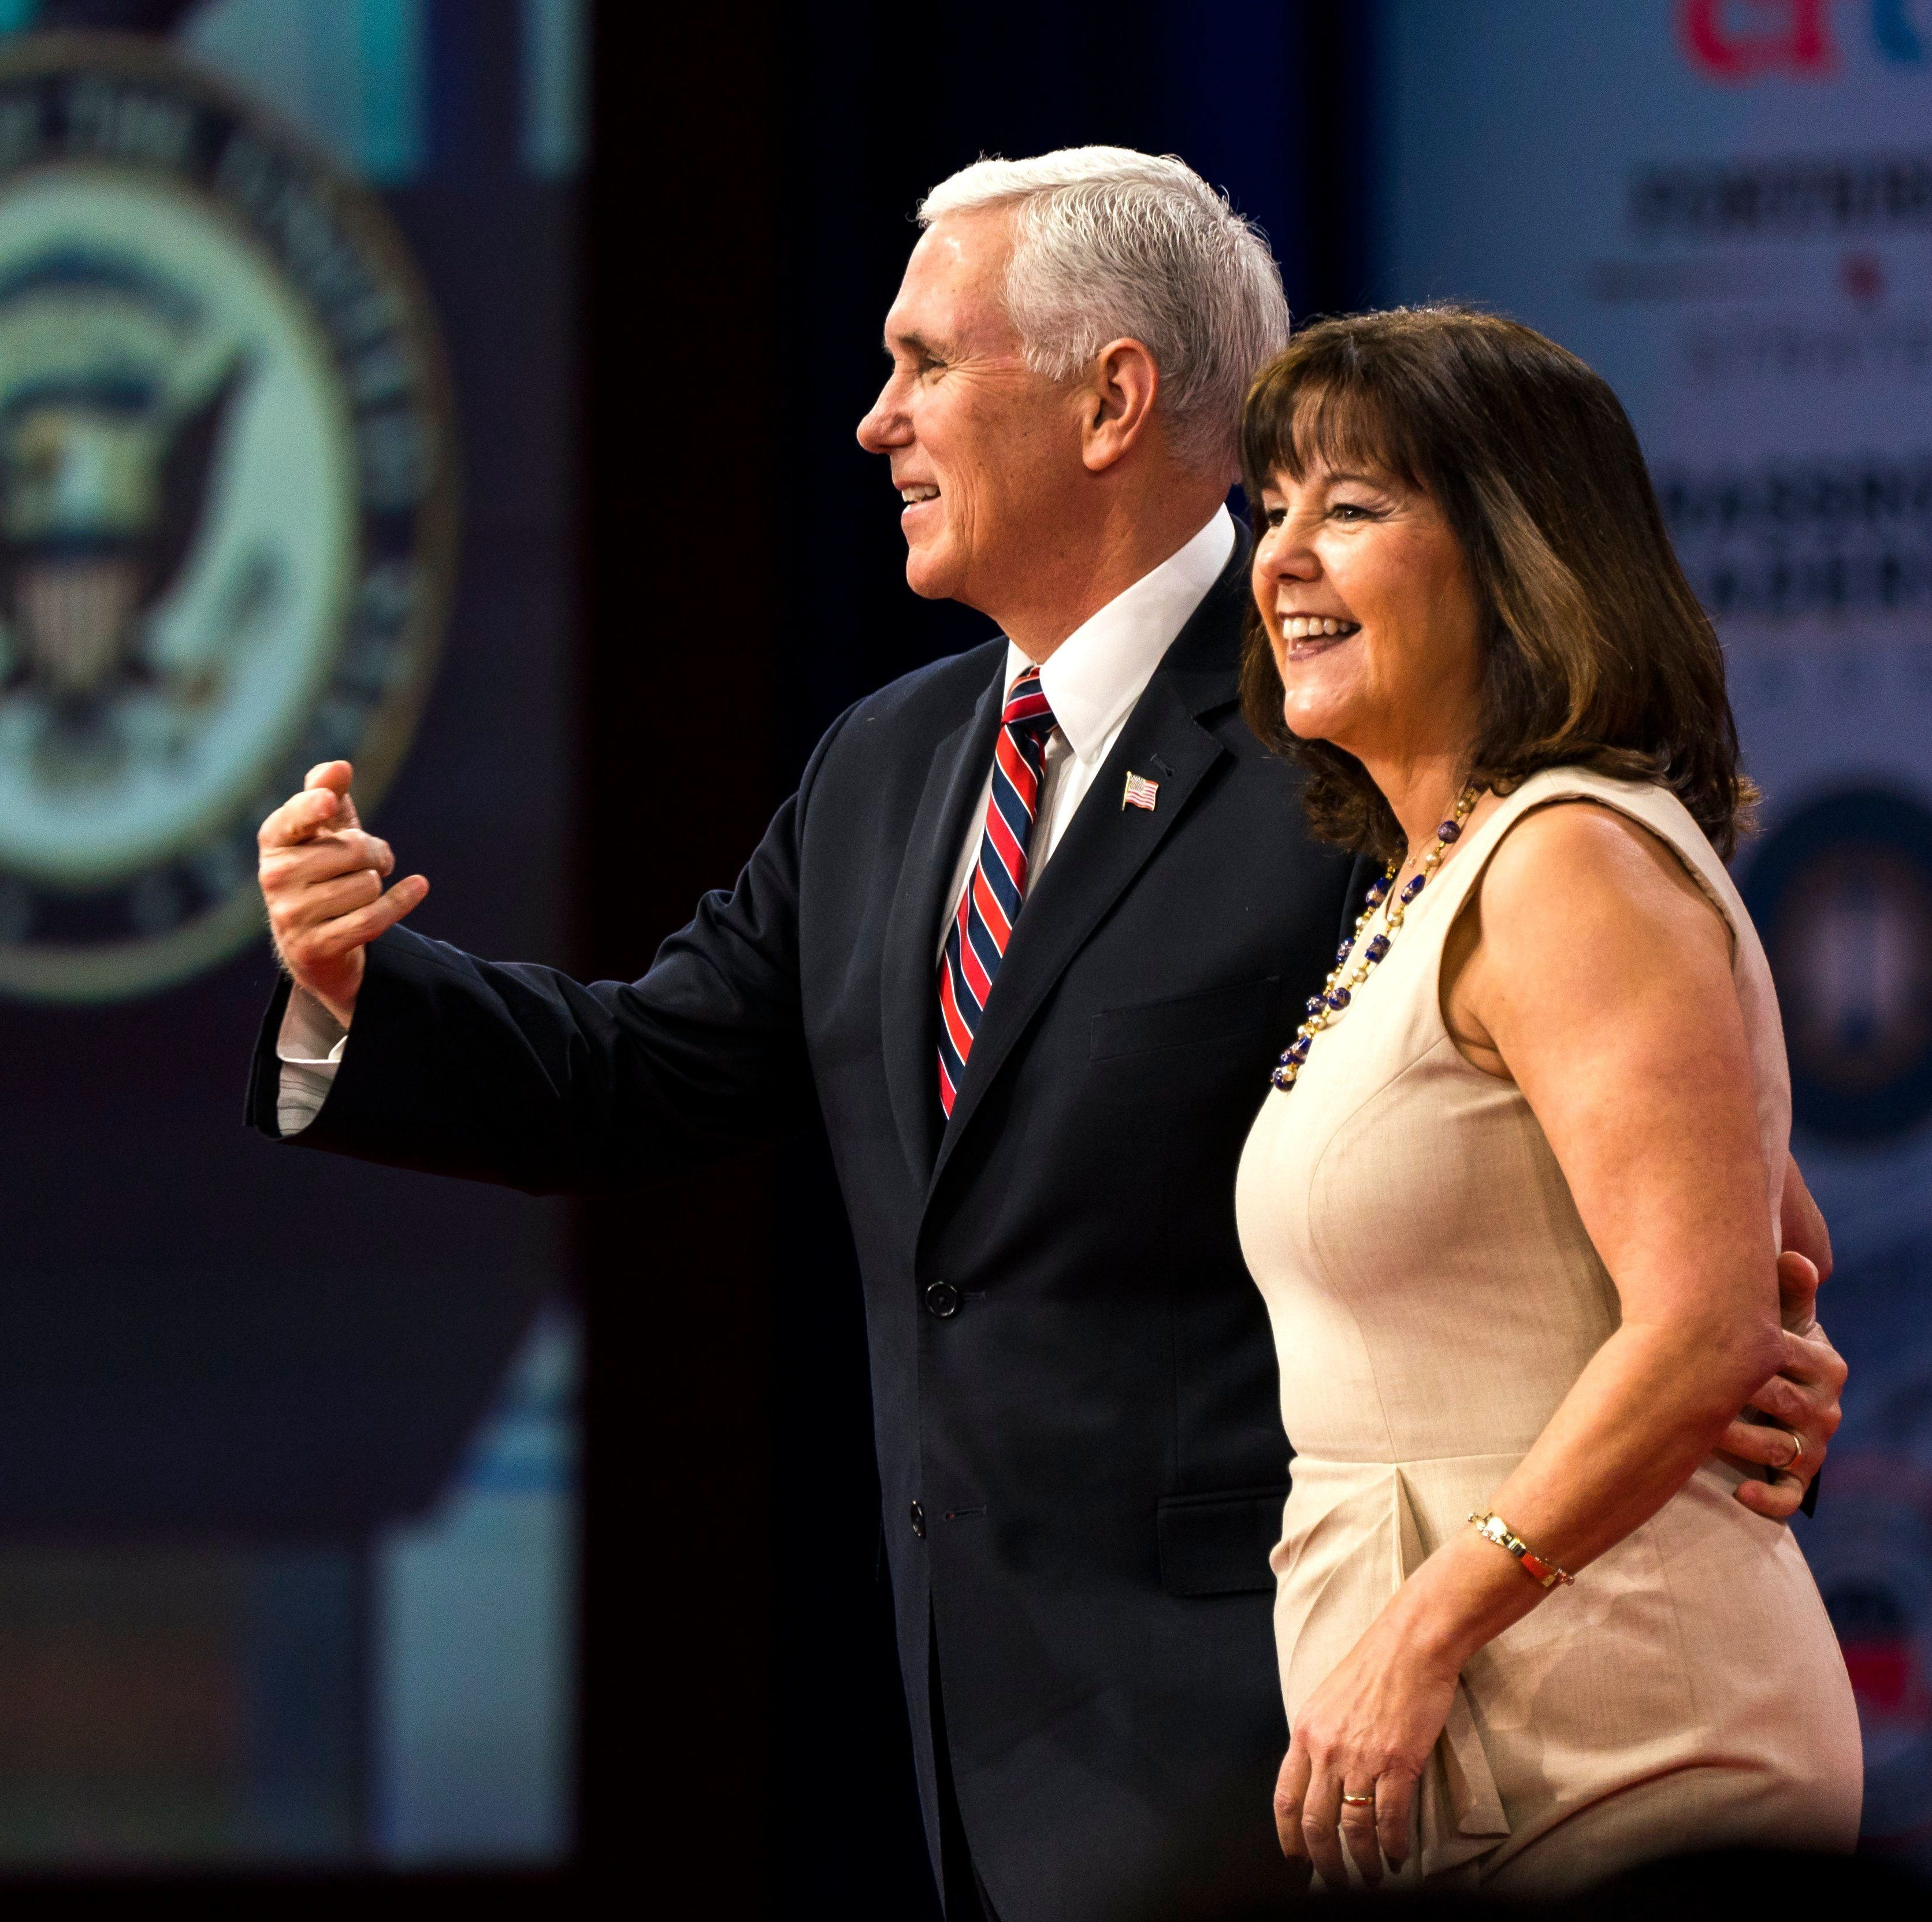 Karen Pence takes job at school that bans gay students, employees